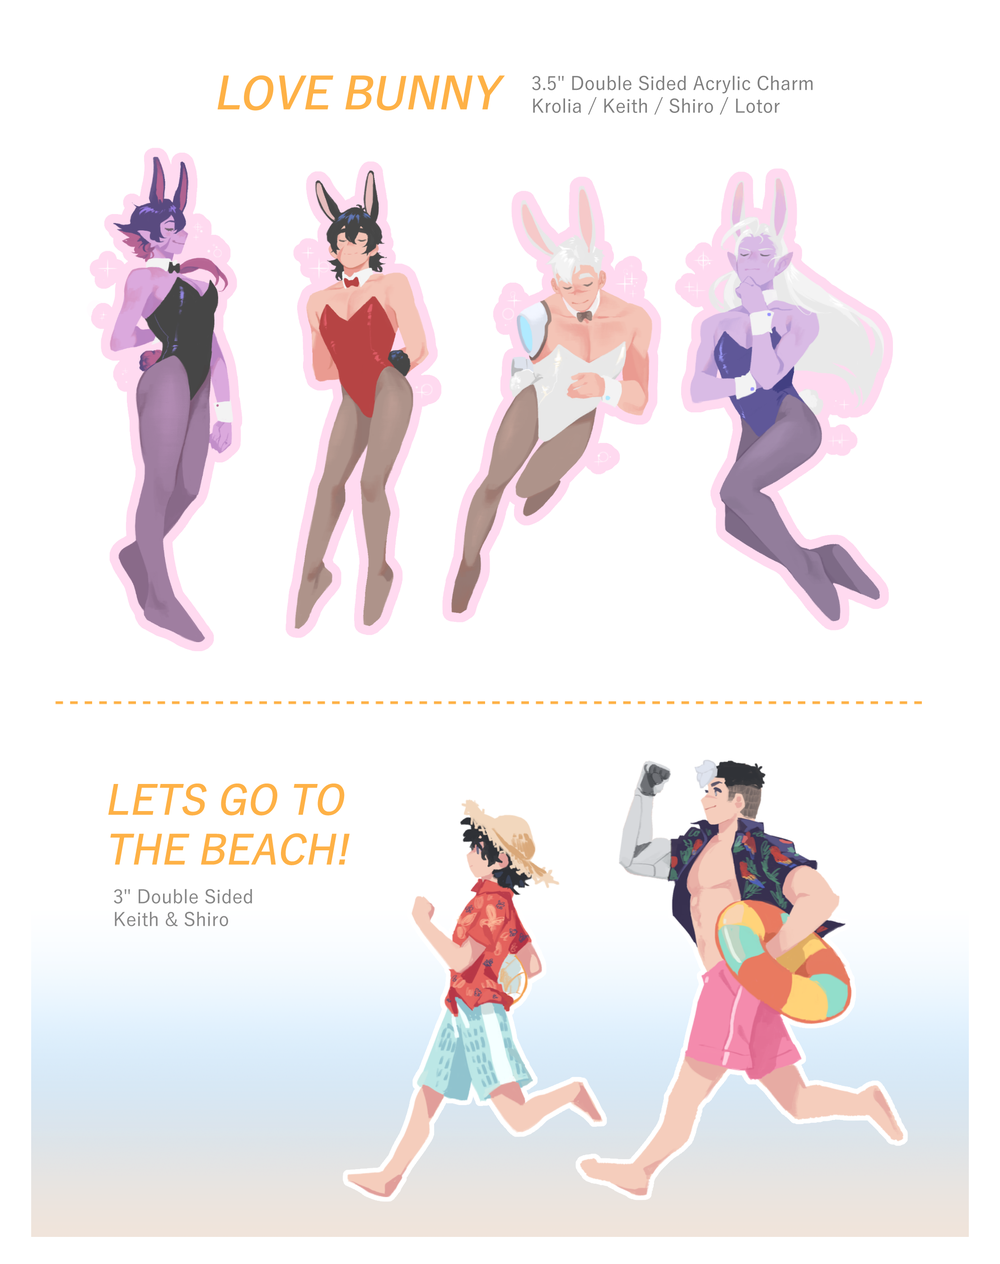 Image of Love Bunny & Lets Go To The Beach // VLD Charms